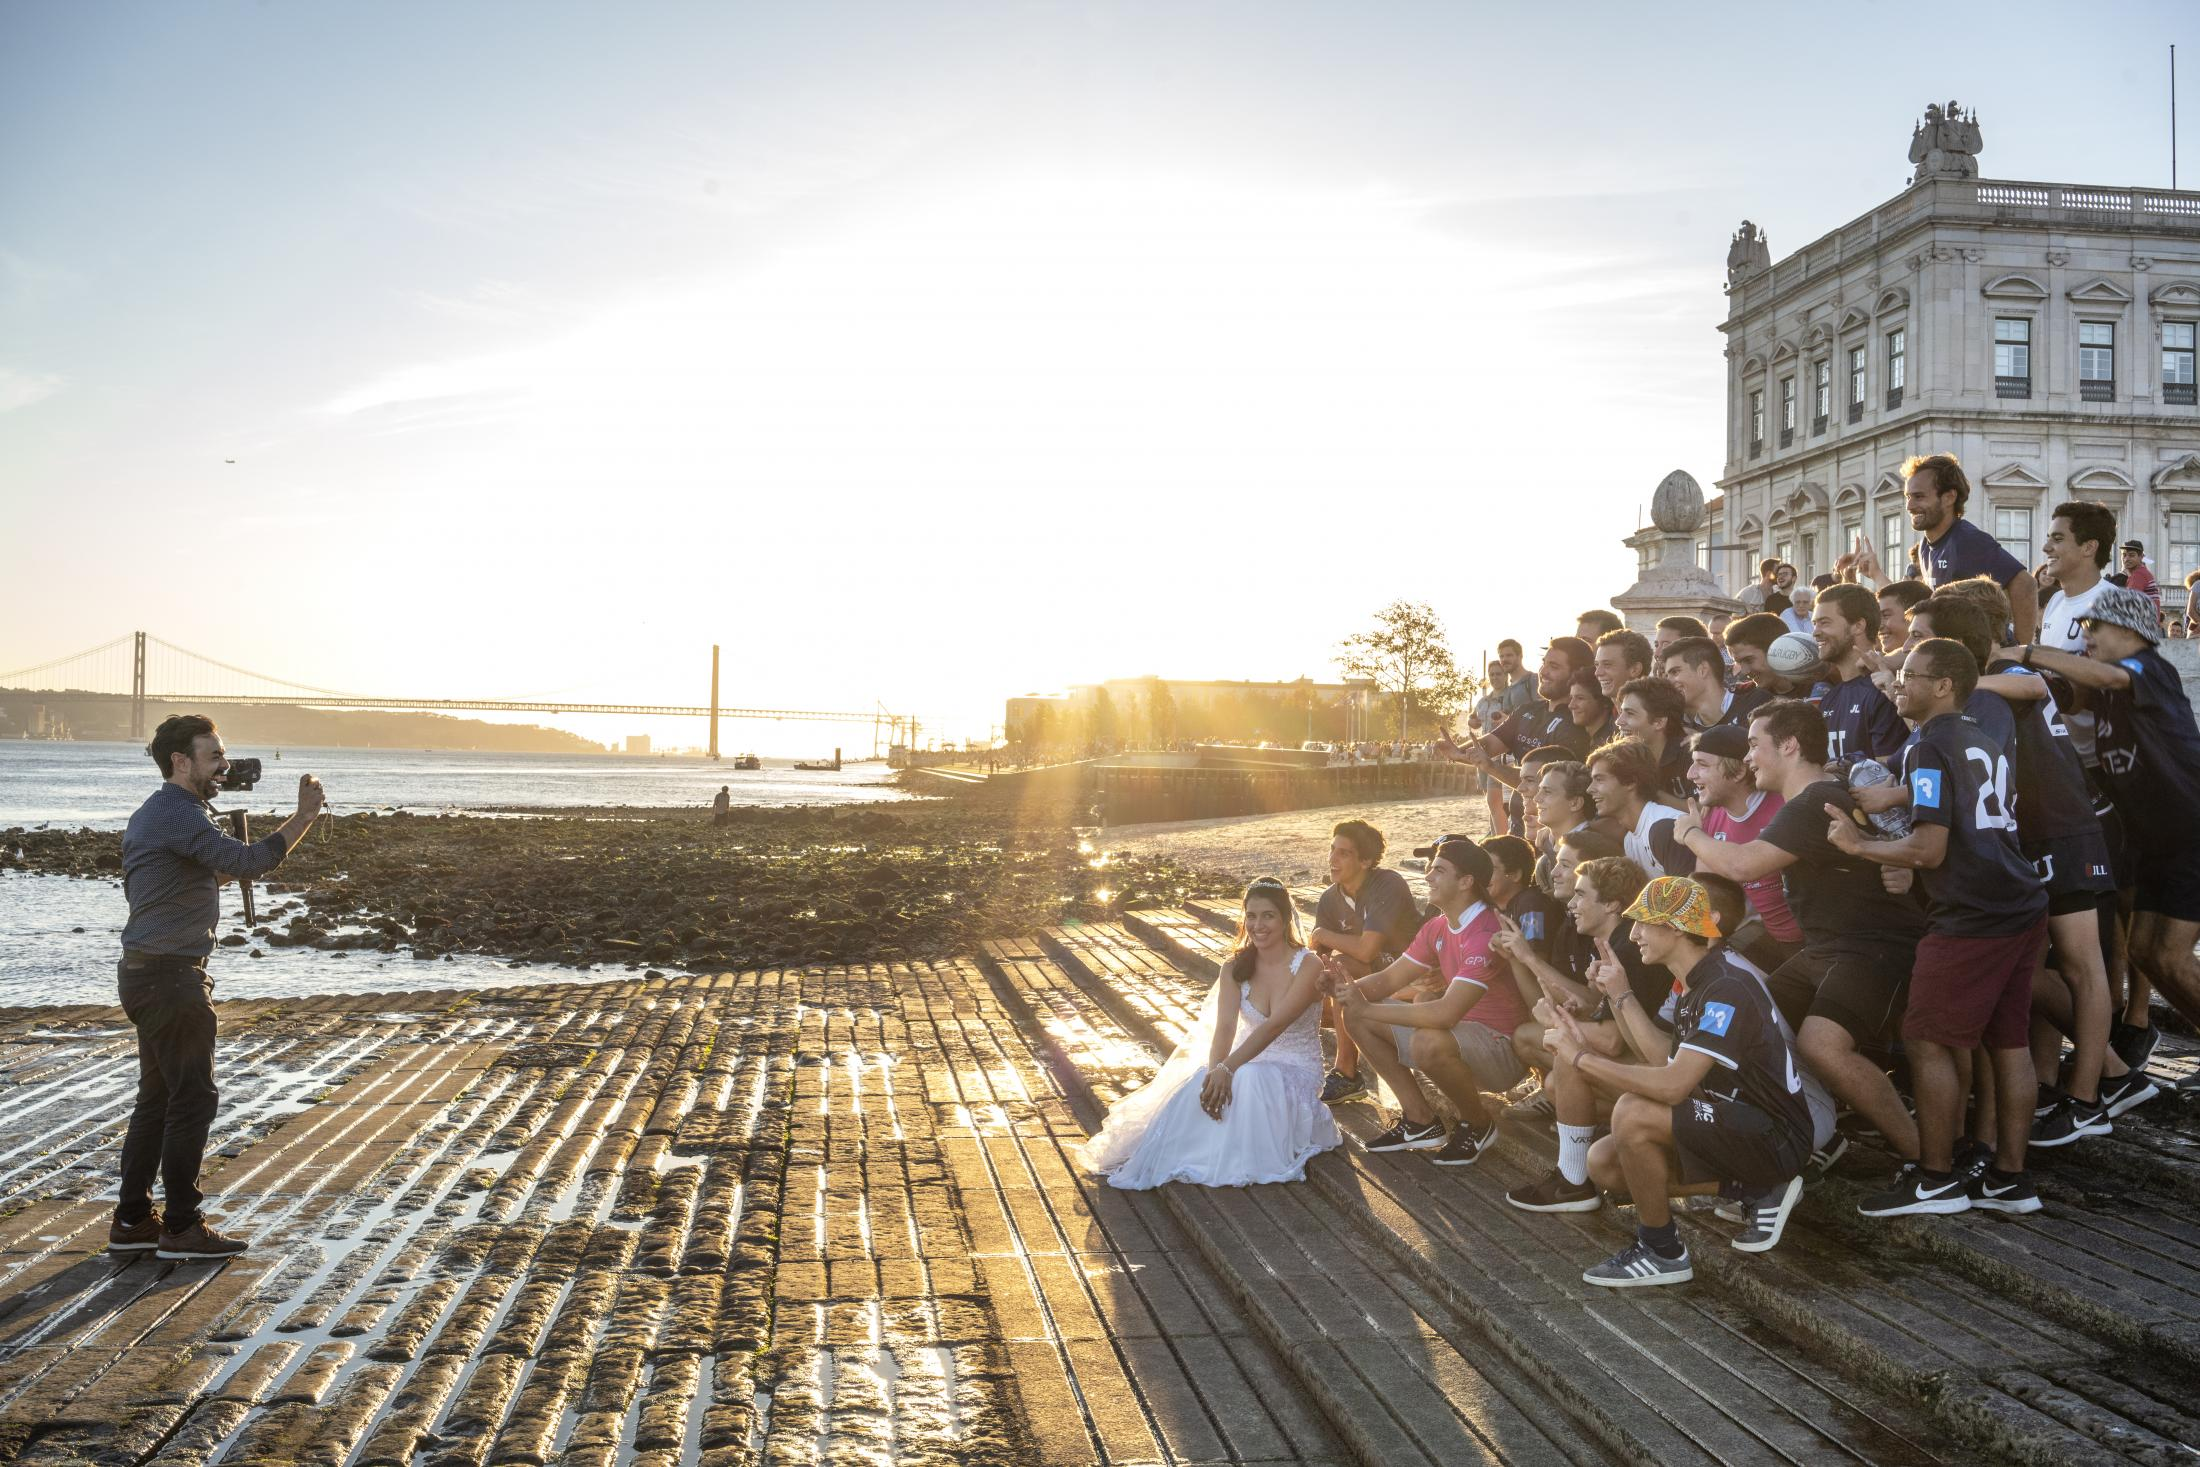 A casual encounter between a bride making pictures for her wedding and a visiting rugby team at the Cais das Colunas in the Baixa area of Lisbon